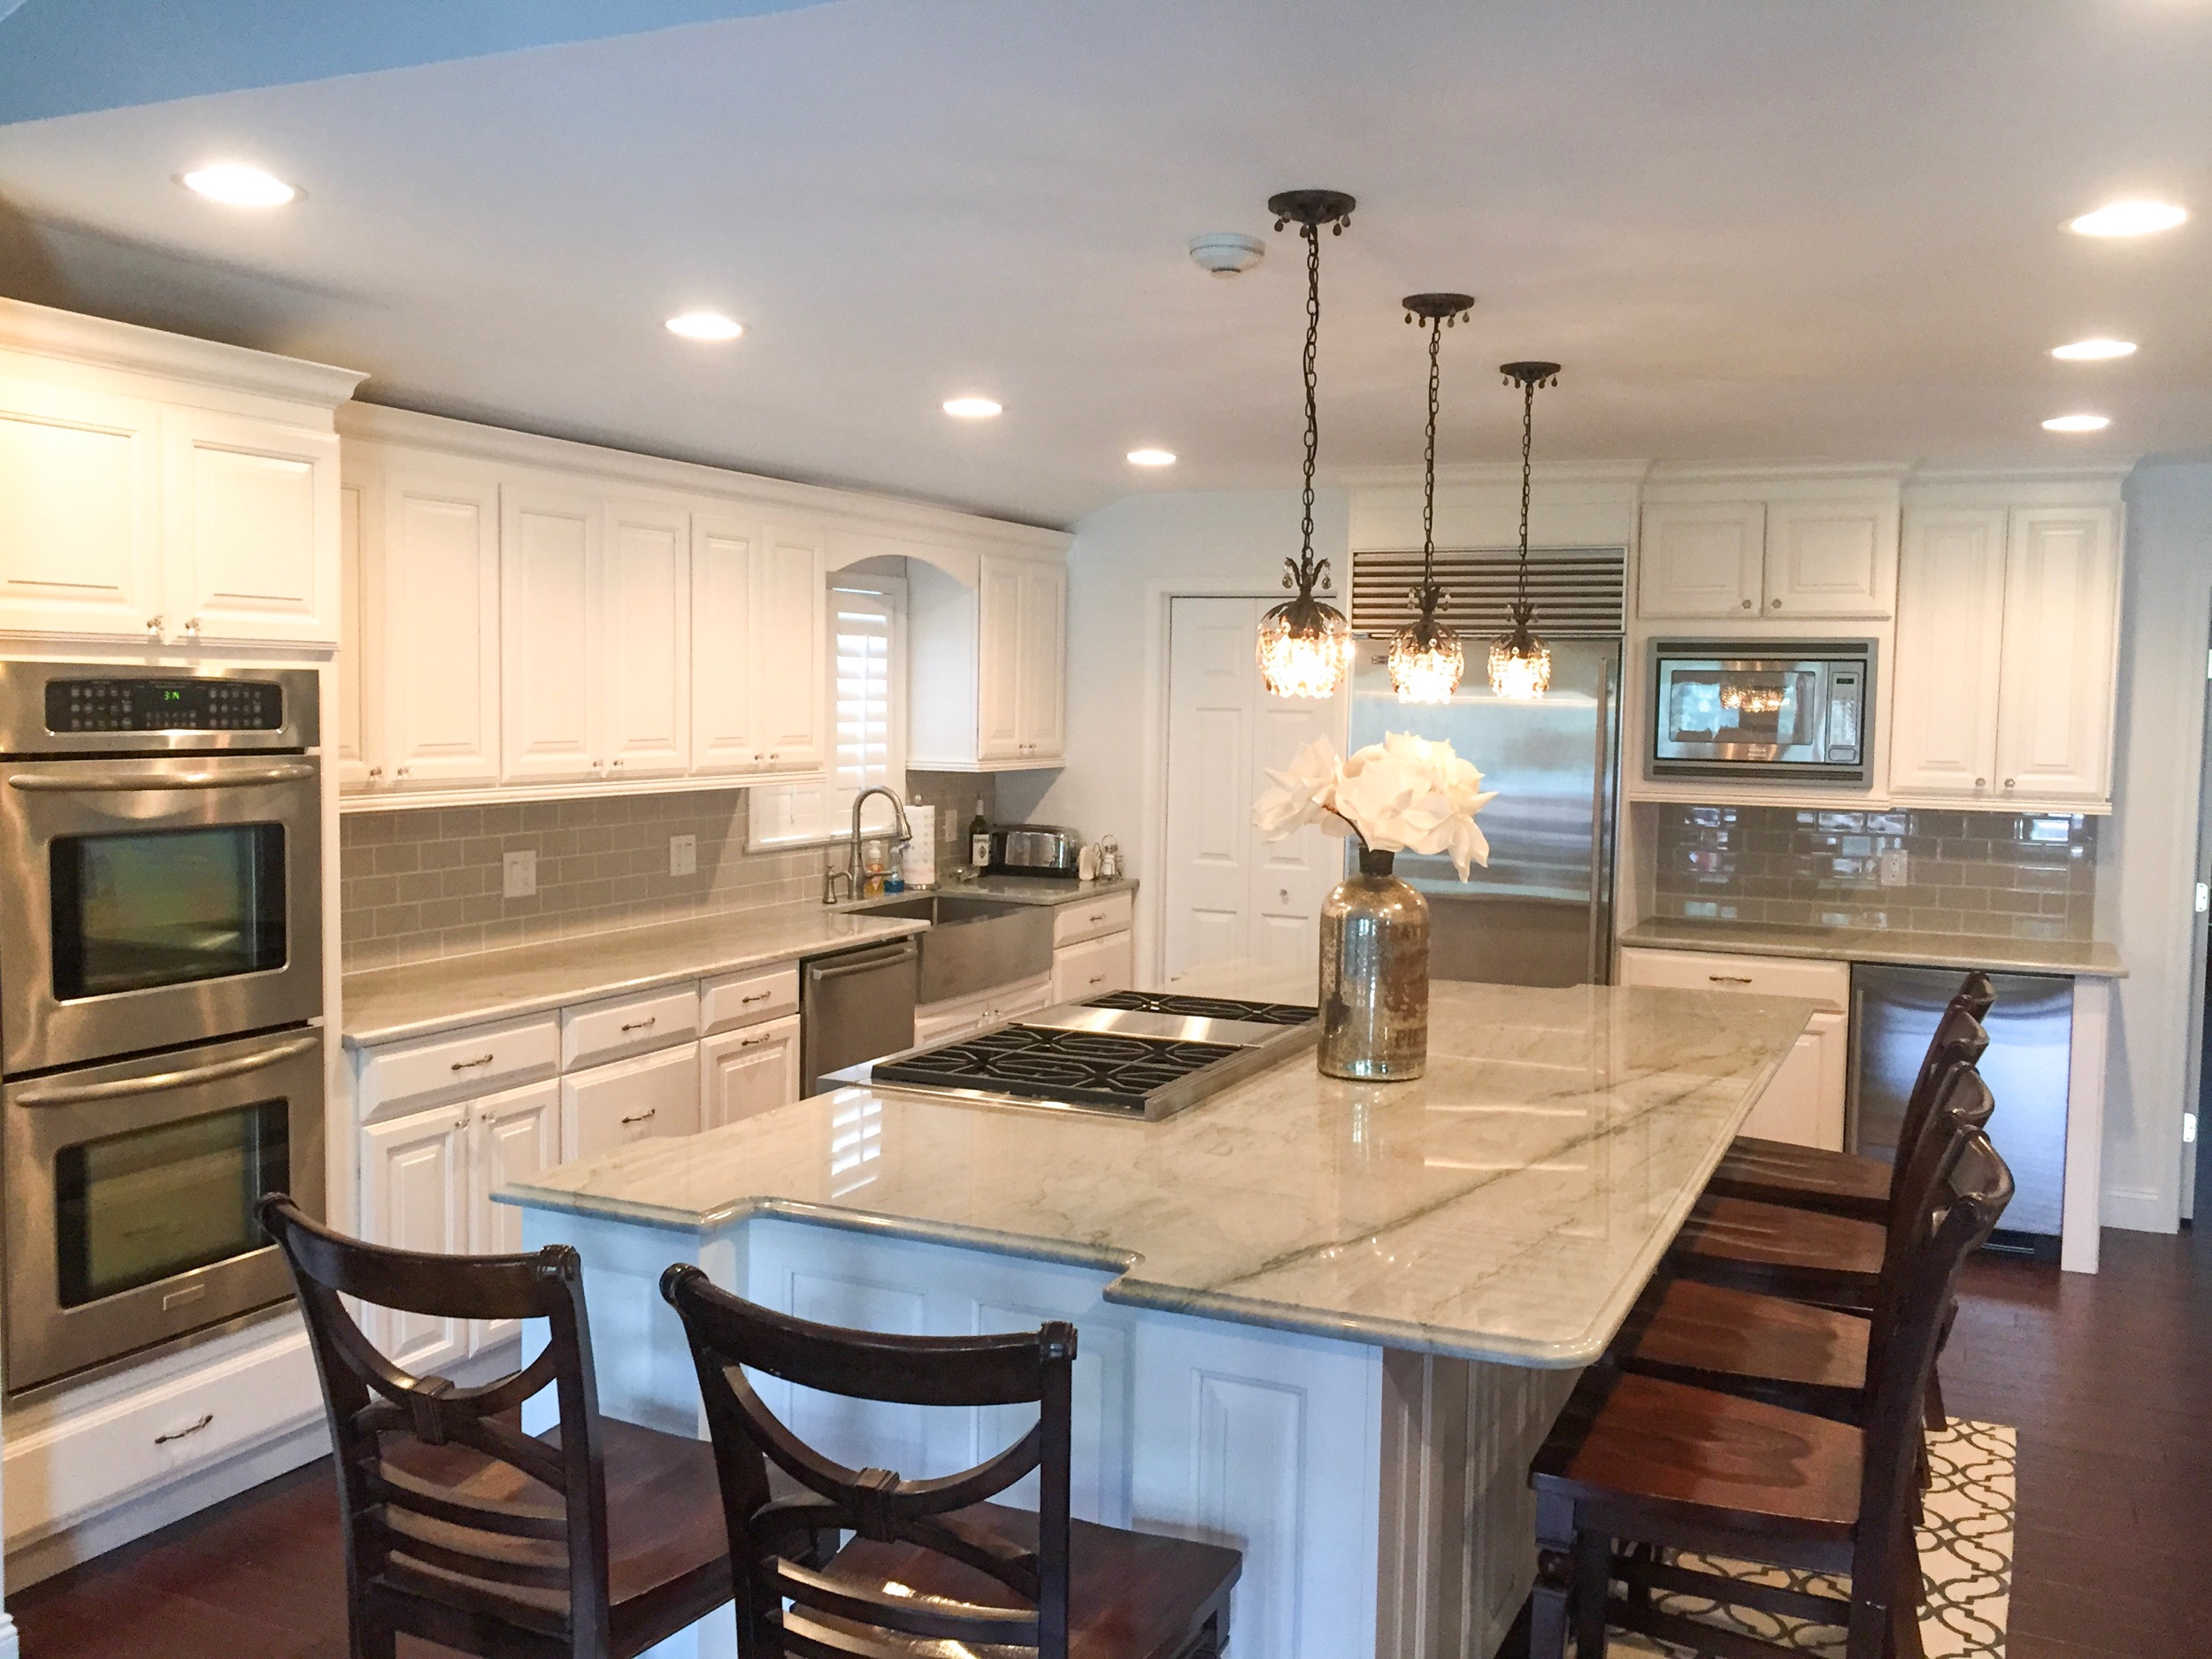 6 Reasons You Should Paint Your Kitchen Cabinets Cabinet Painting Kitchen Remodeling Scranton Pa